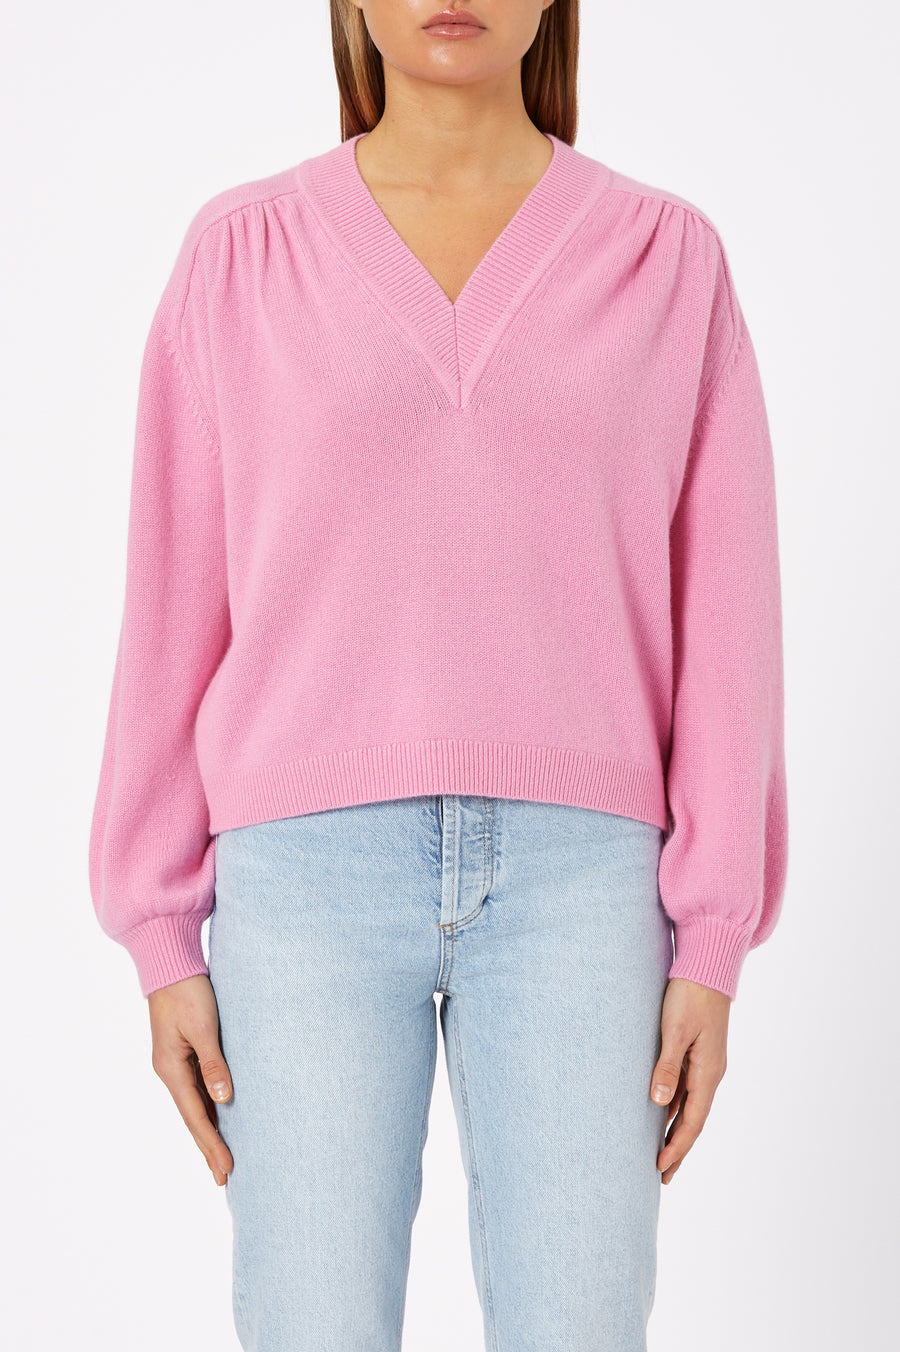 The Cashmere V Neck Sweater has been crafted from a luxuriously soft cashmere for a relaxed silhouette